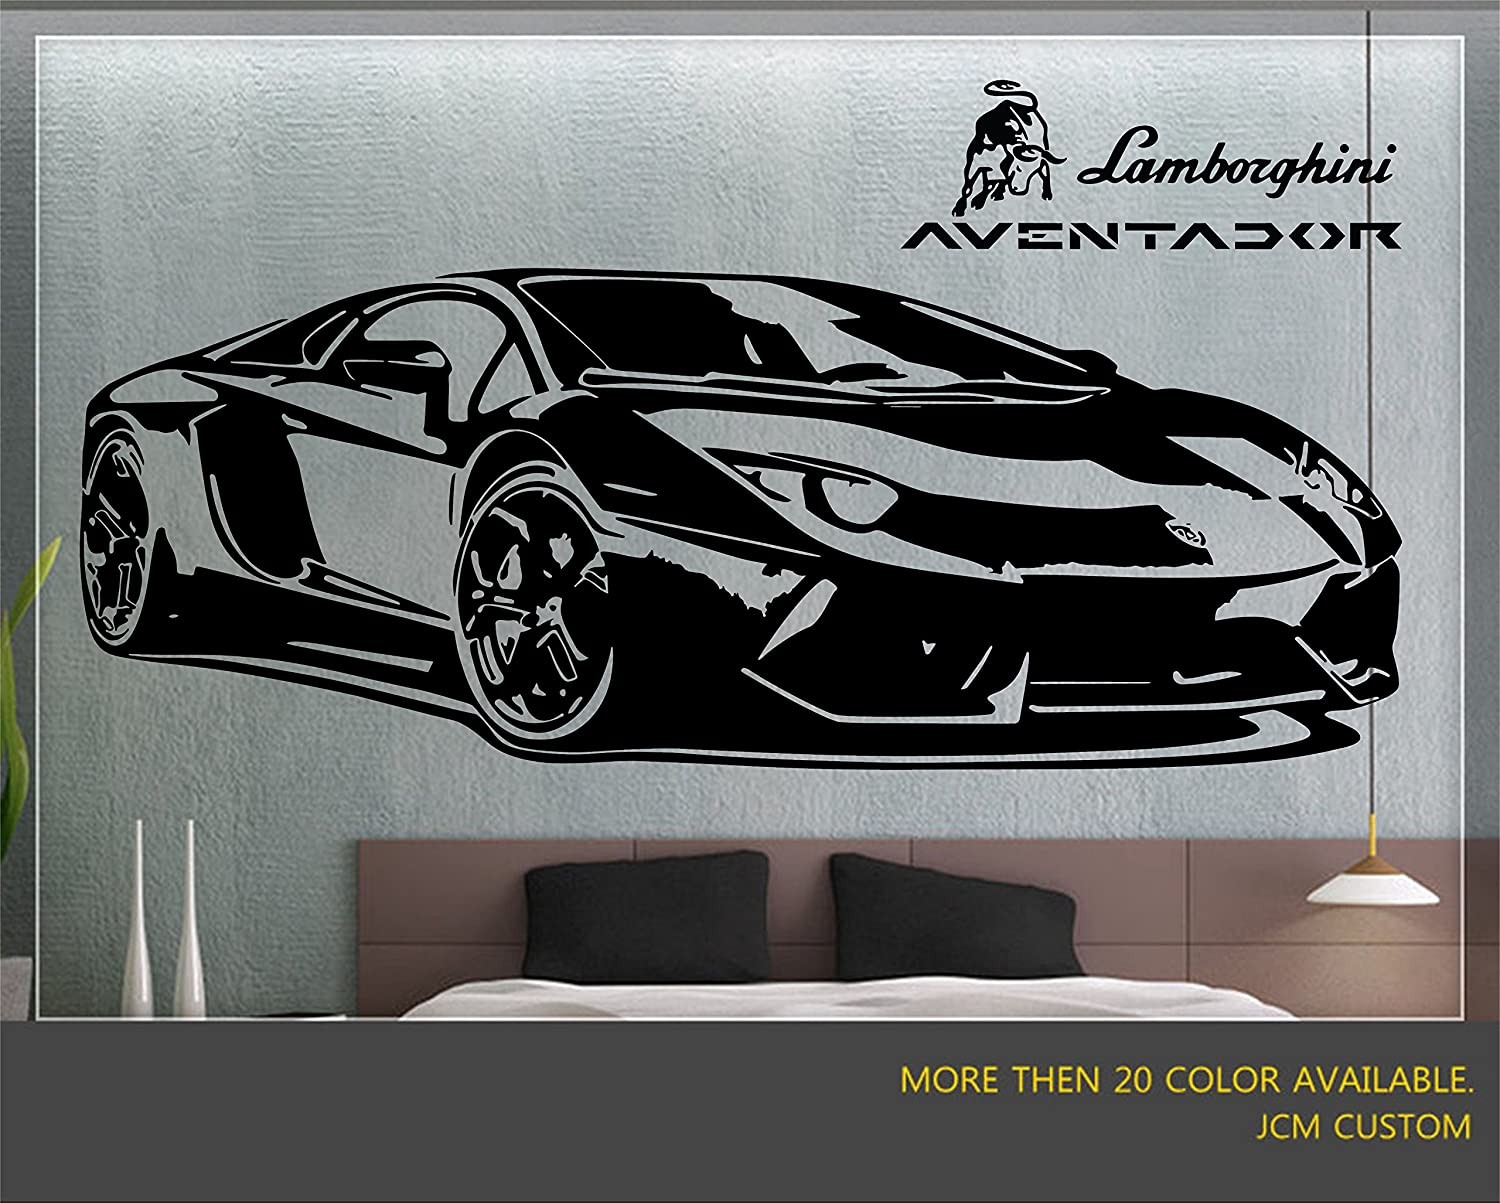 Jcm custom aventador sport car removable wall vinyl decal stickers 58 x 22 amazon com